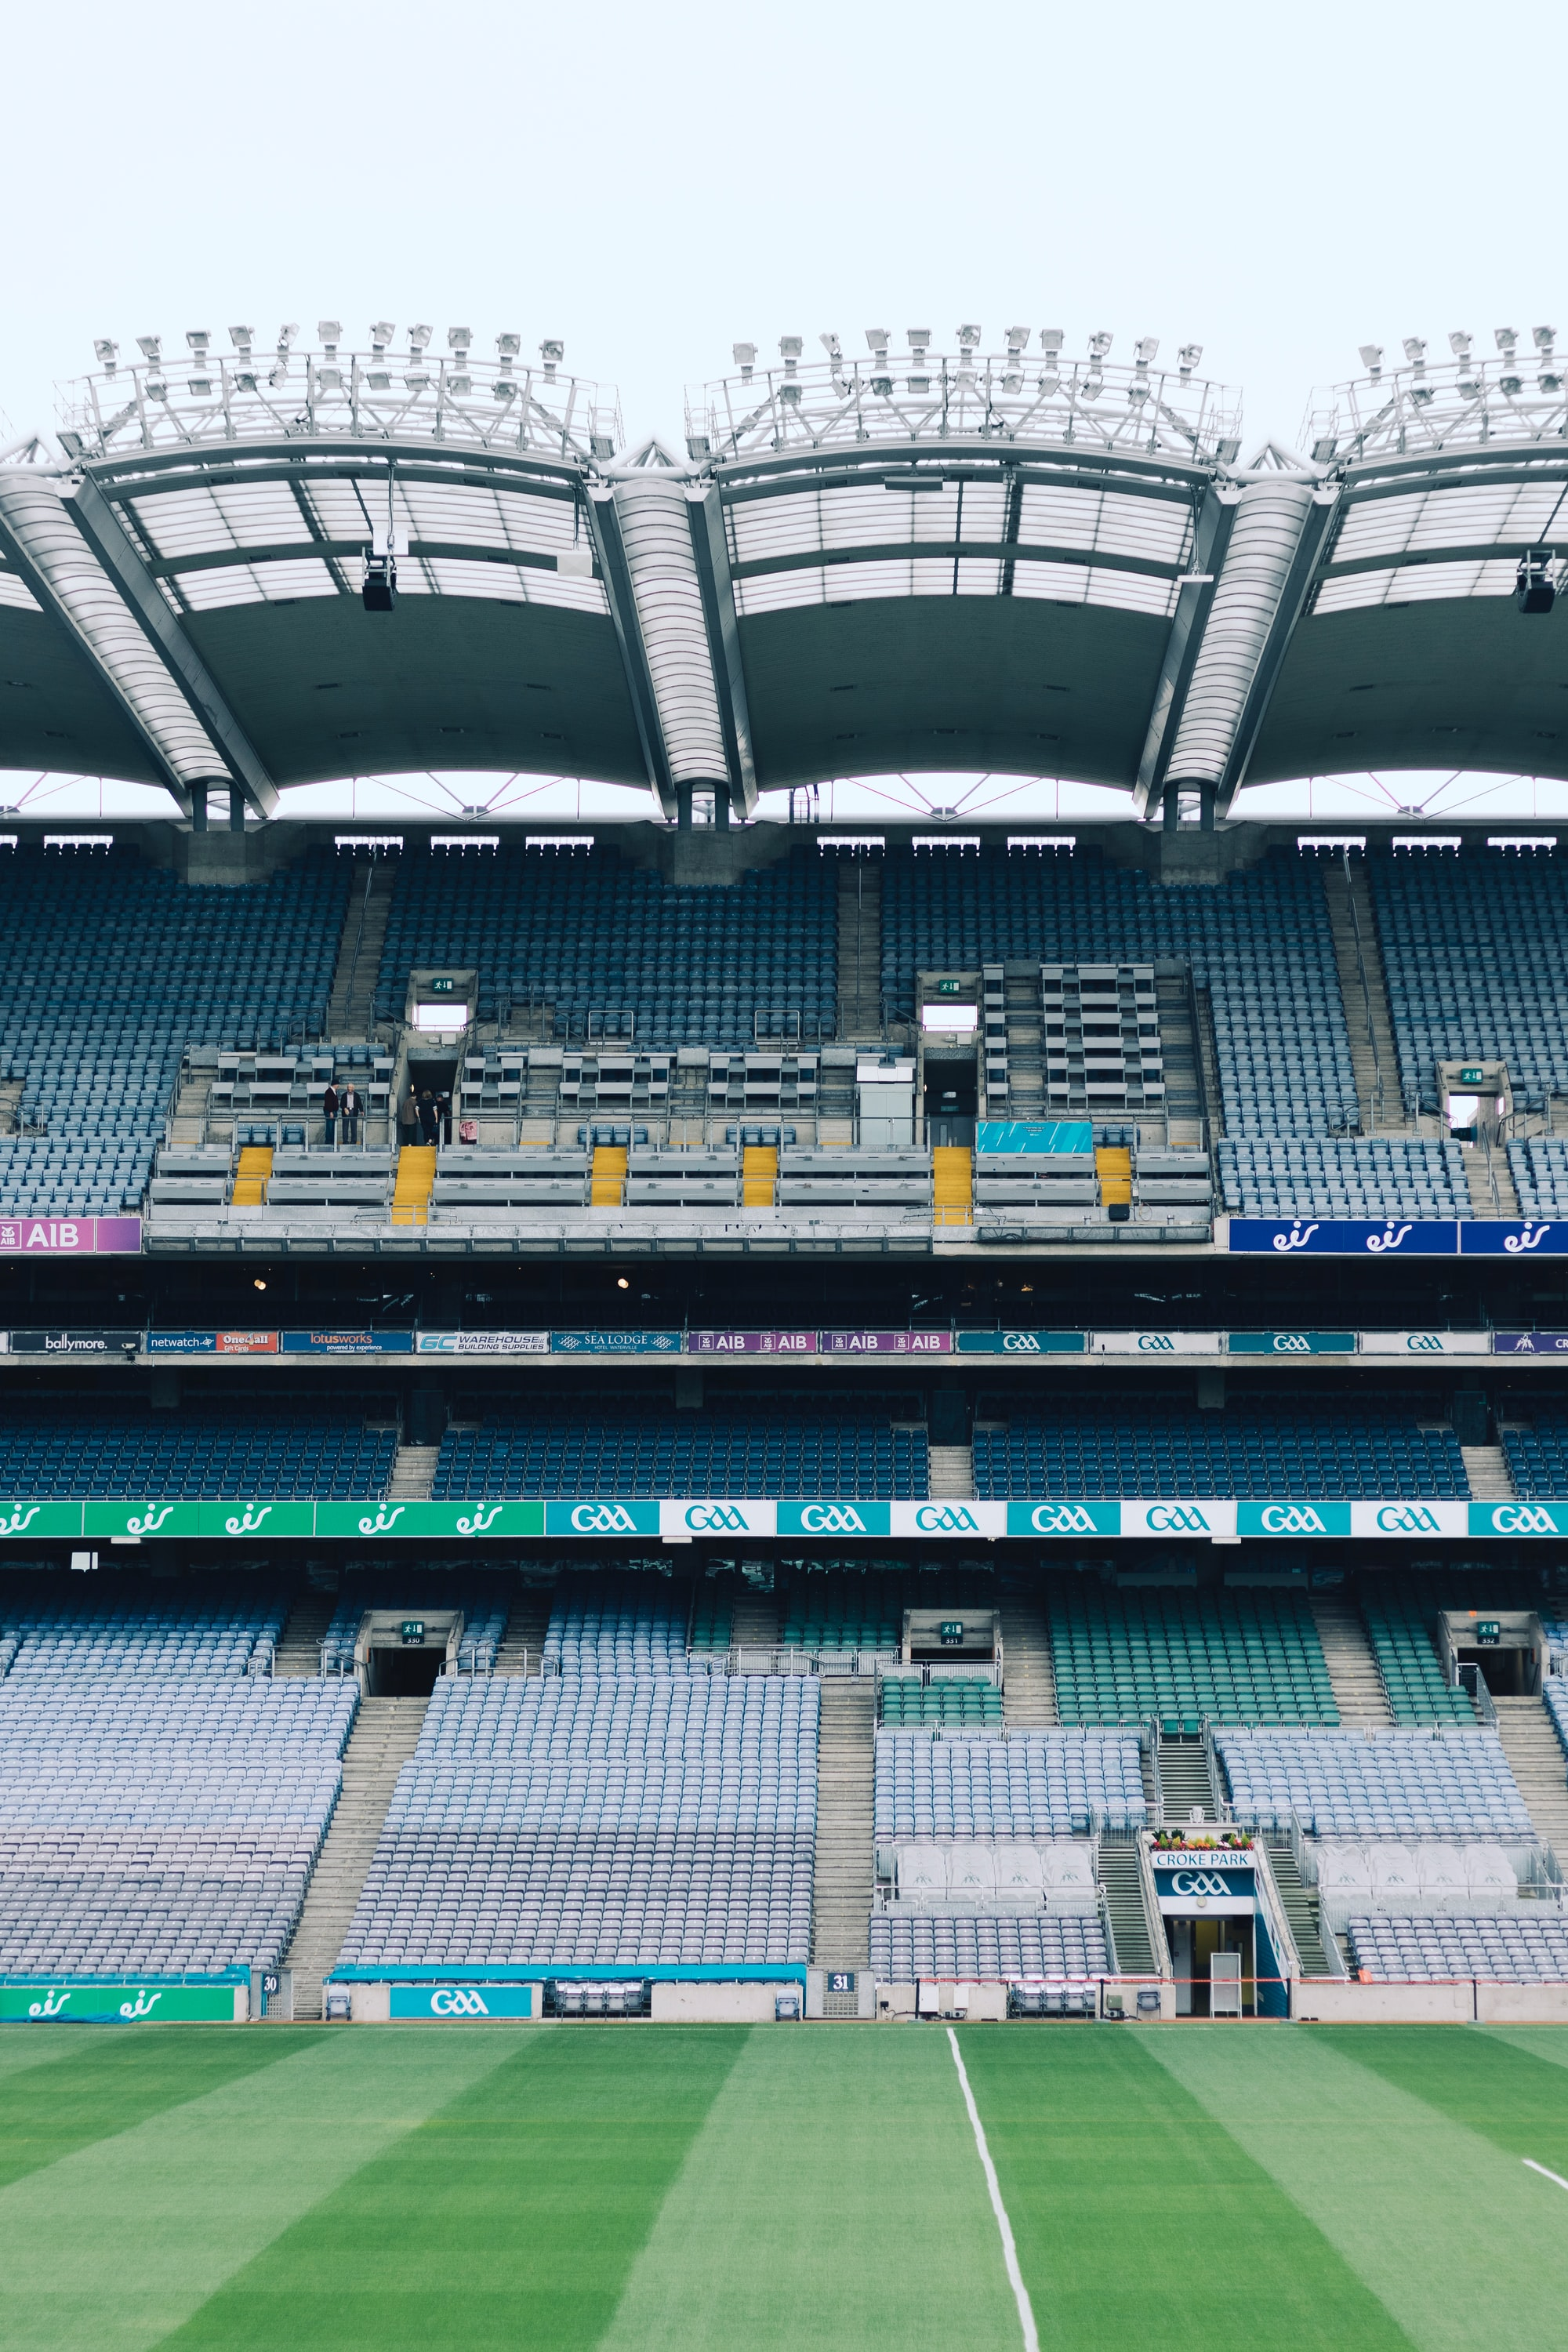 Croke Park is the stadium of Dublin. It's the home of Gaelic Athletic Association (as you can see on the banners) and Gaelic games. The day I visited it, Prince Harry had been there few hours before and he walked on that grass. It's something unusual because of the conflicts between UK and Ireland!